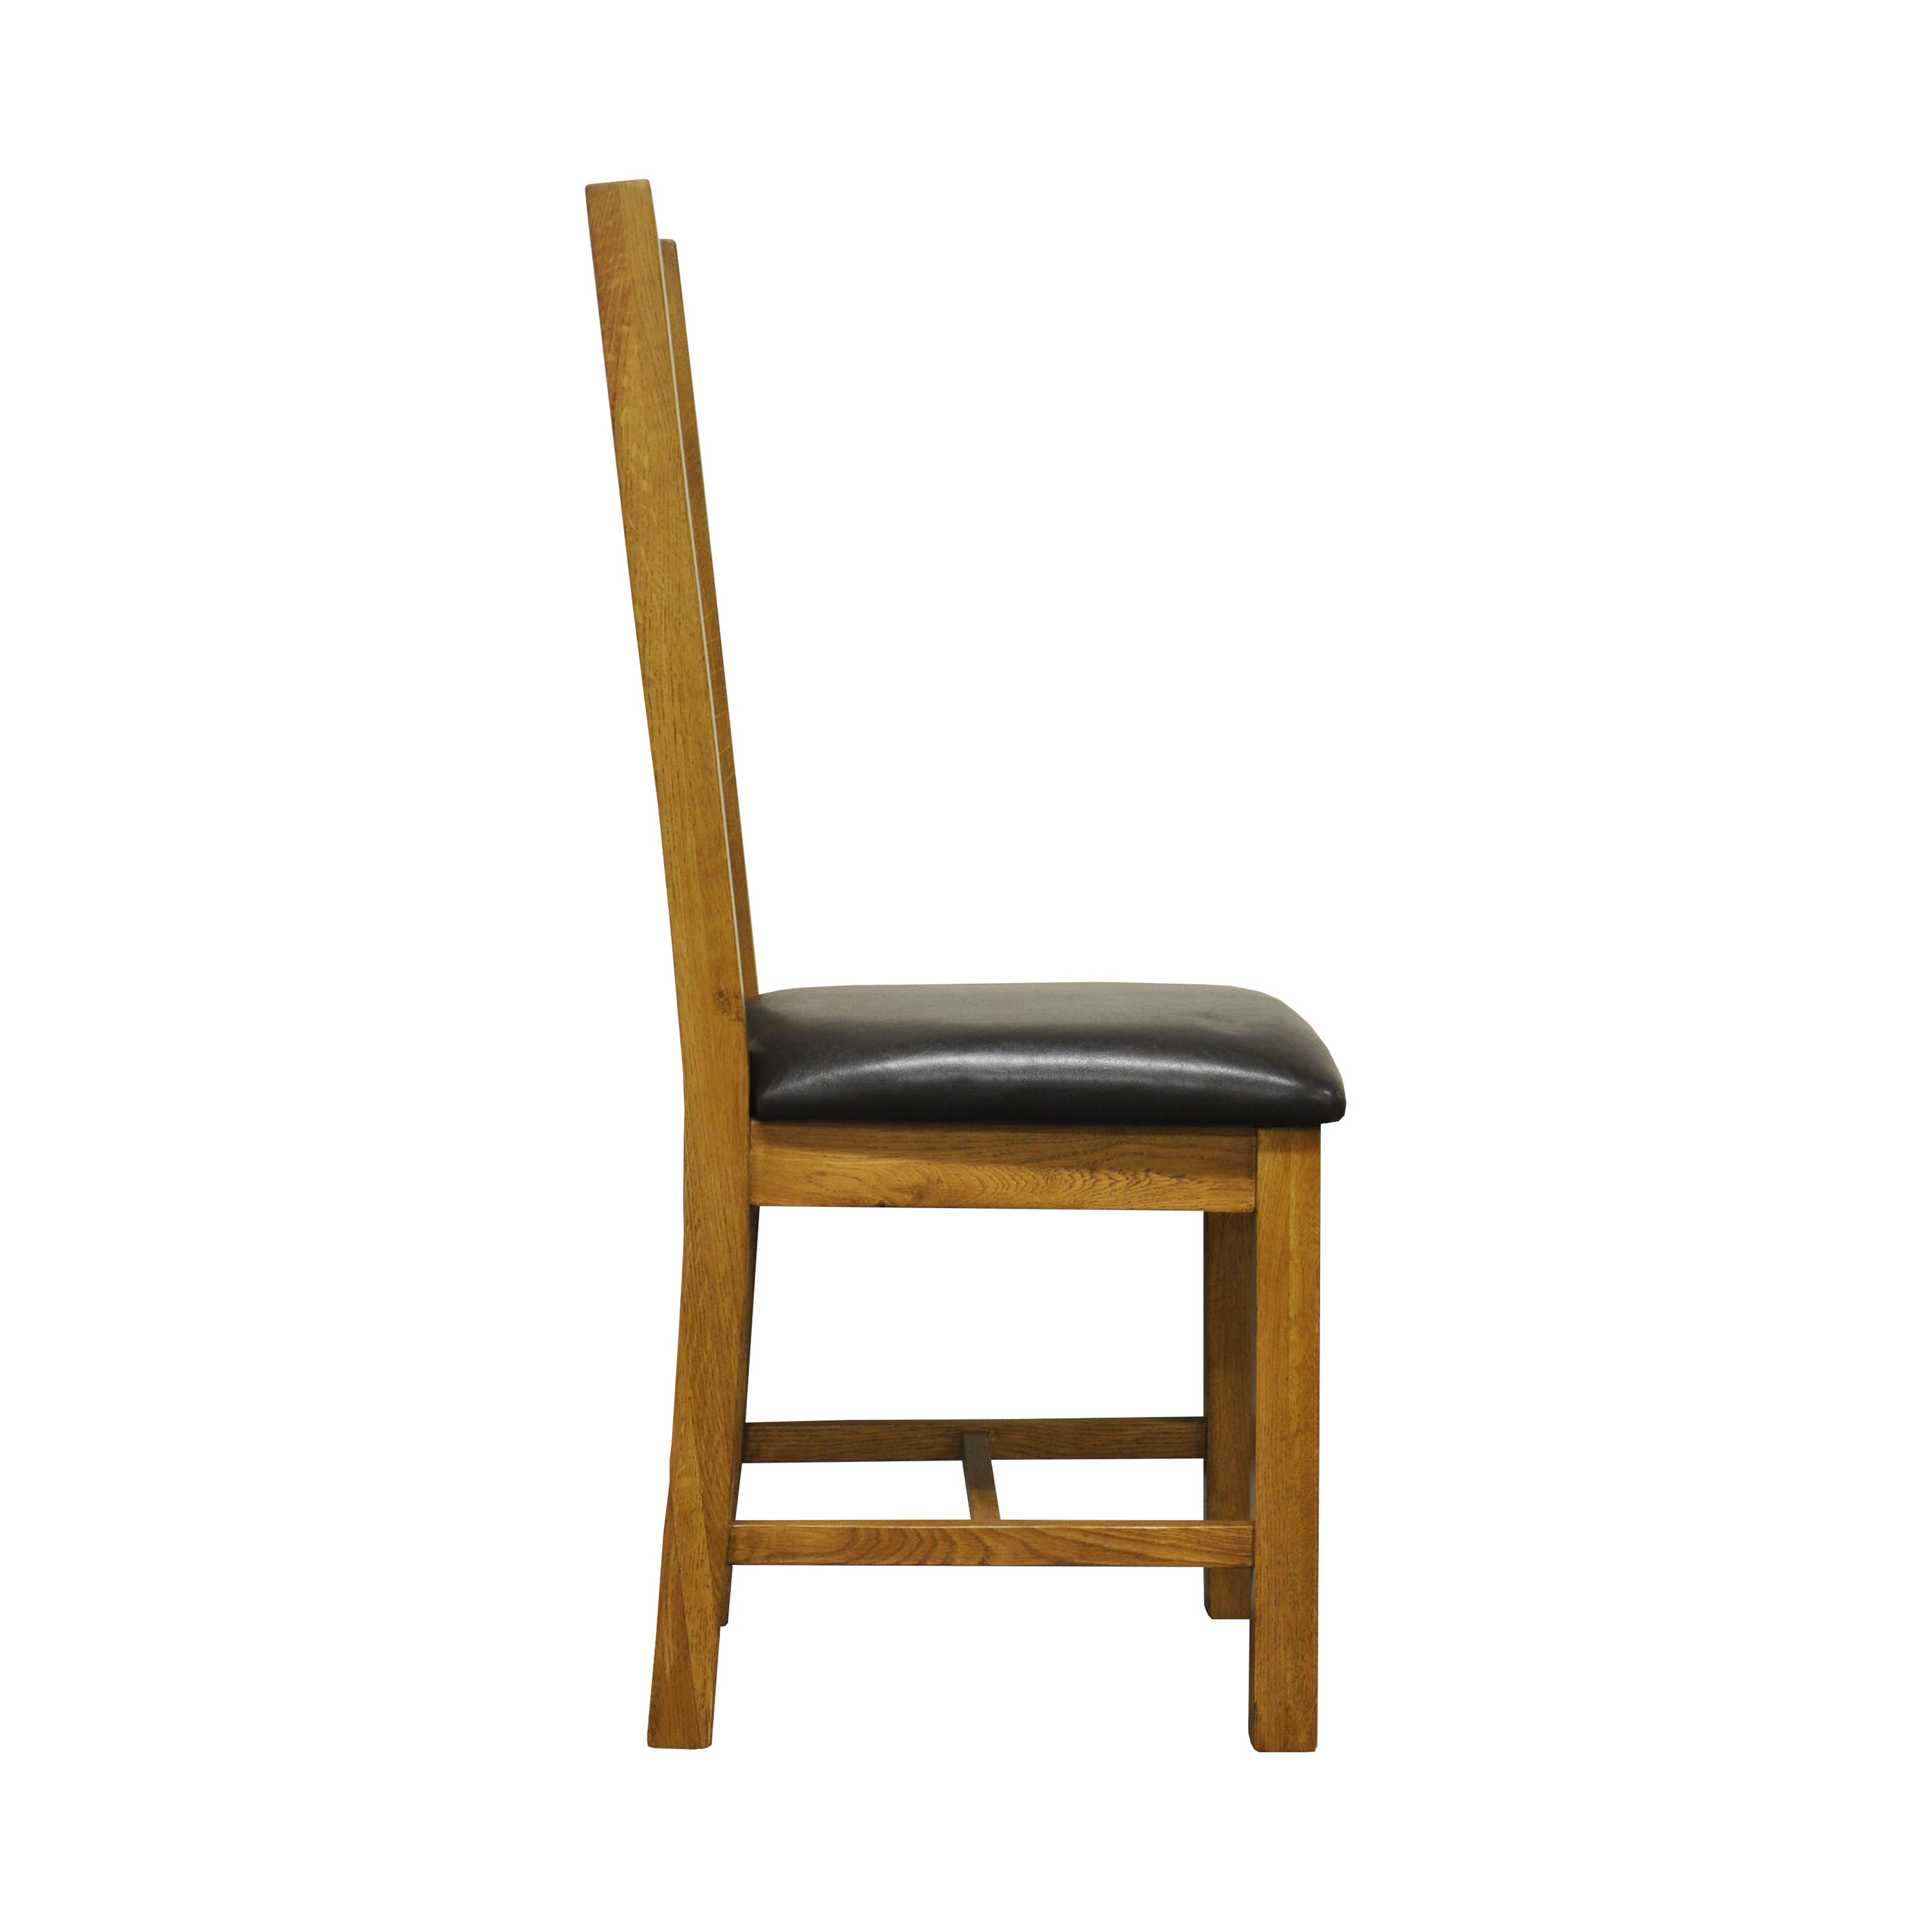 Cross back dining chairs furniture sales today for Furniture sales today